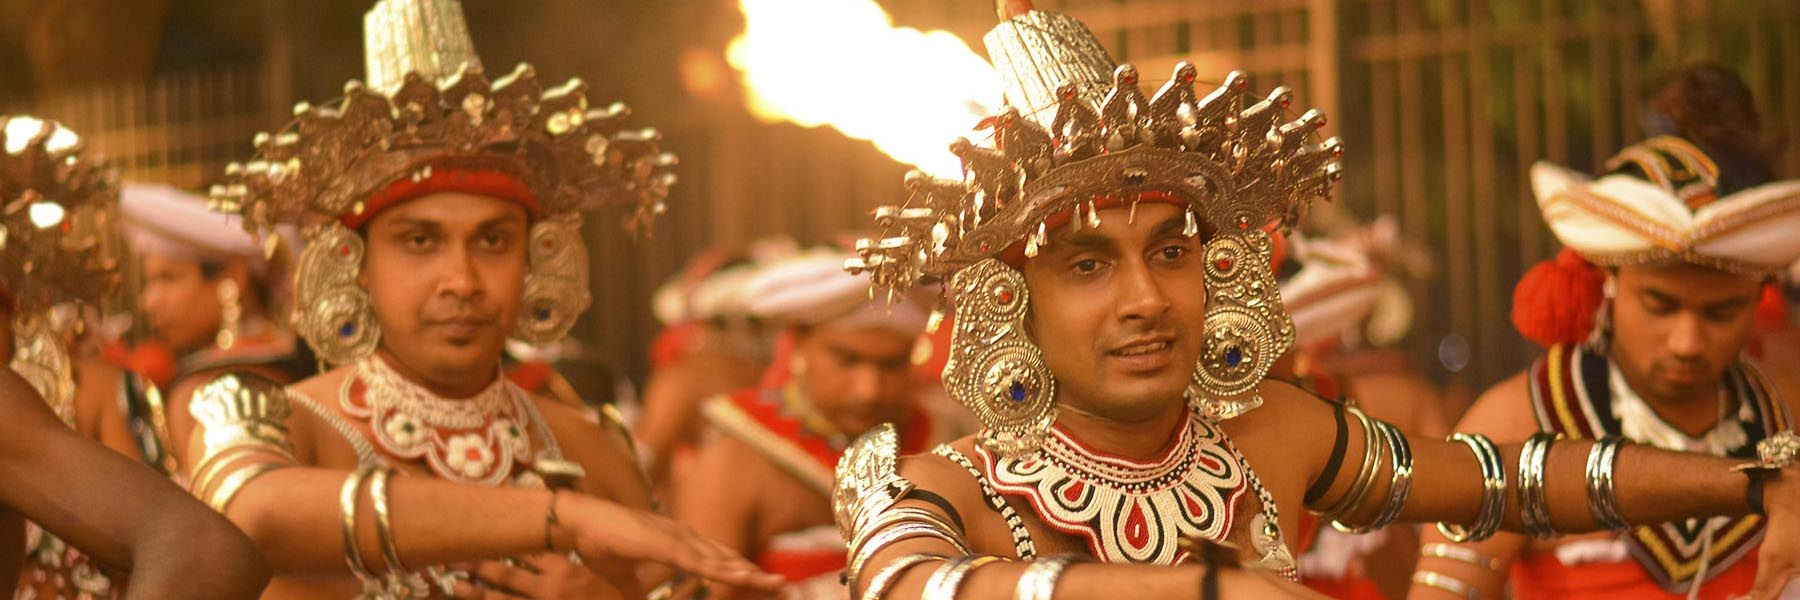 Best of Sri Lanka with Kandy Festival